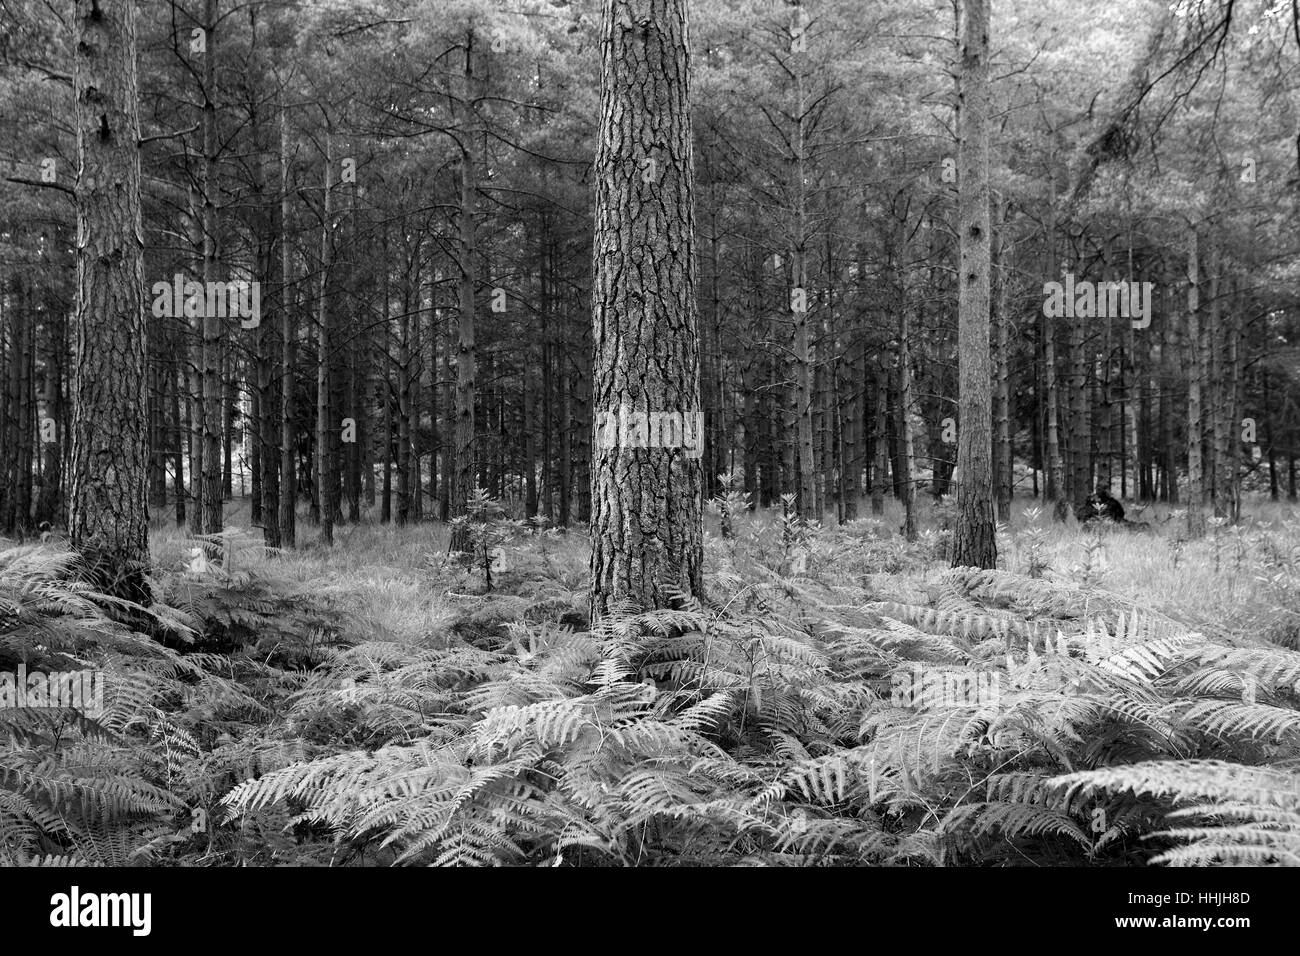 Les arbres forestiers et de fougères, Blanc Moor, Parc National de New Forest, Hampshire County ; Angleterre ; Photo Stock